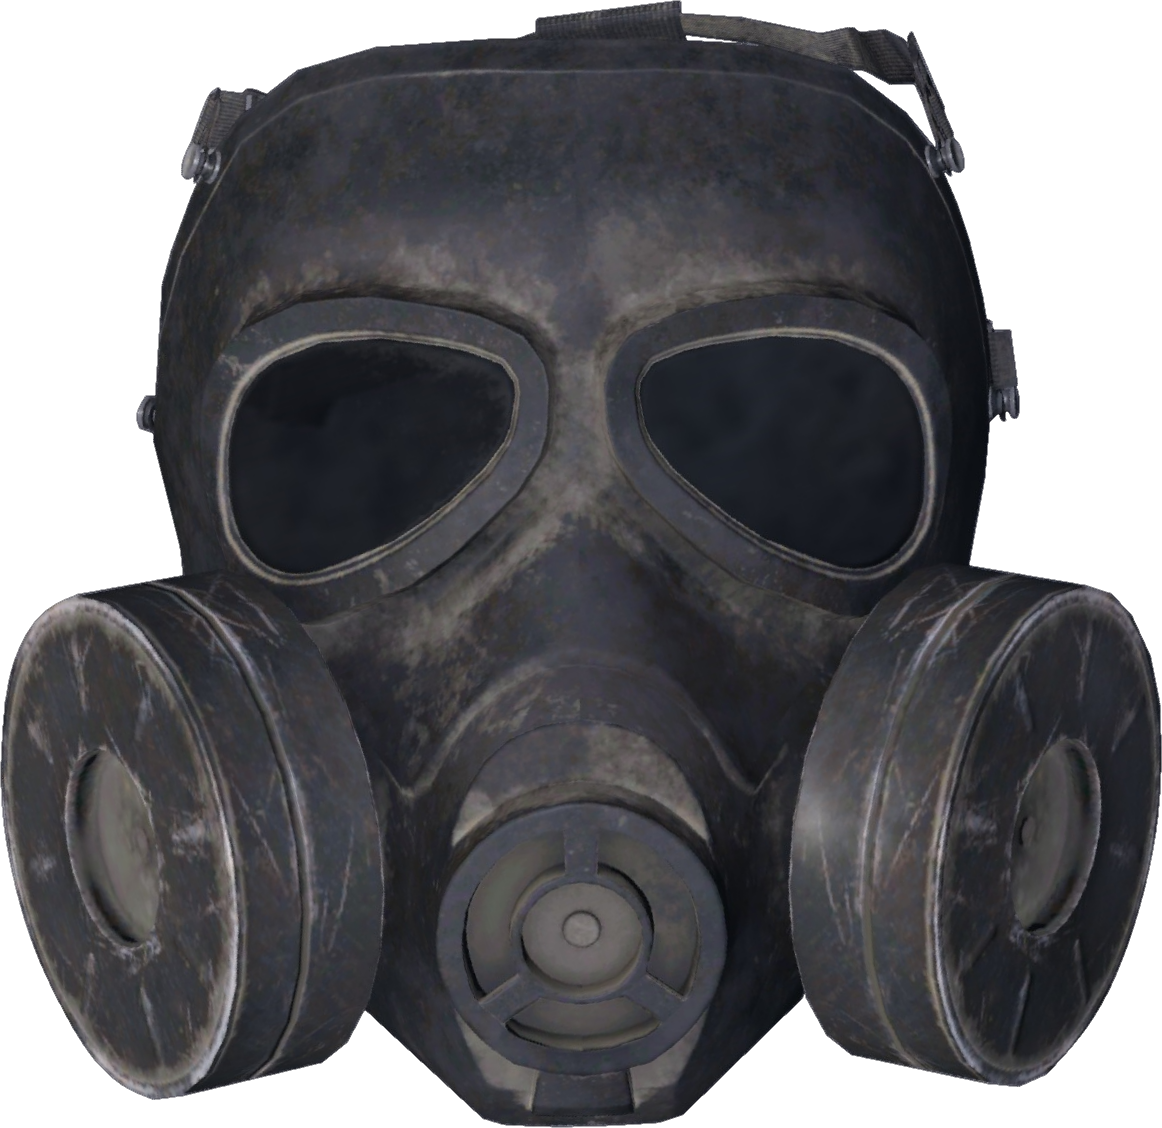 Image - Gas Mask.png | Miscreated Wiki | FANDOM powered by ...